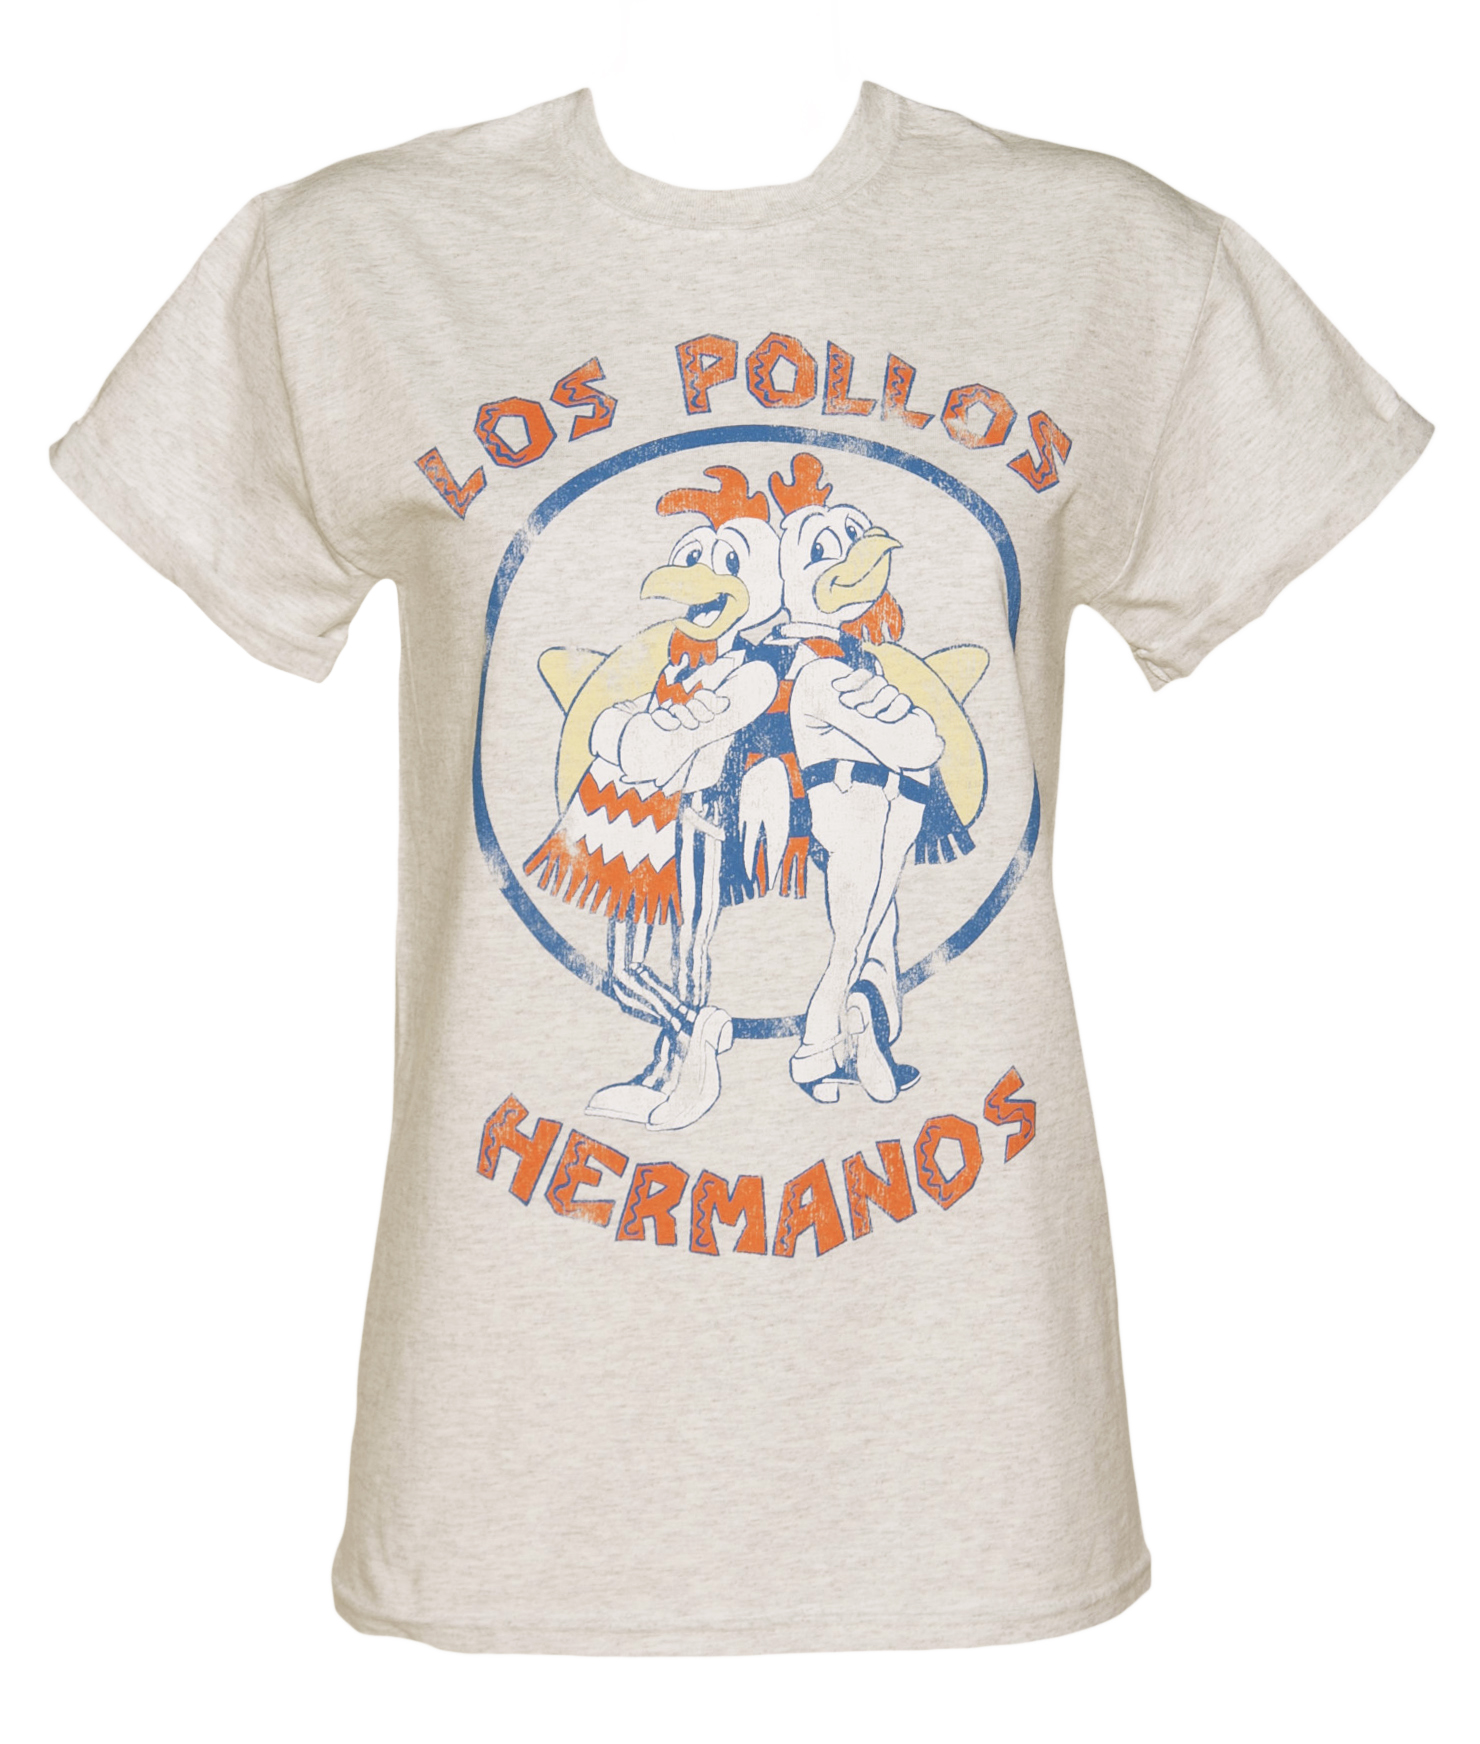 Ladies Los Pollos Hermanos Inspired By Breaking Bad Rolled Sleeve Boyfriend T-Shirt